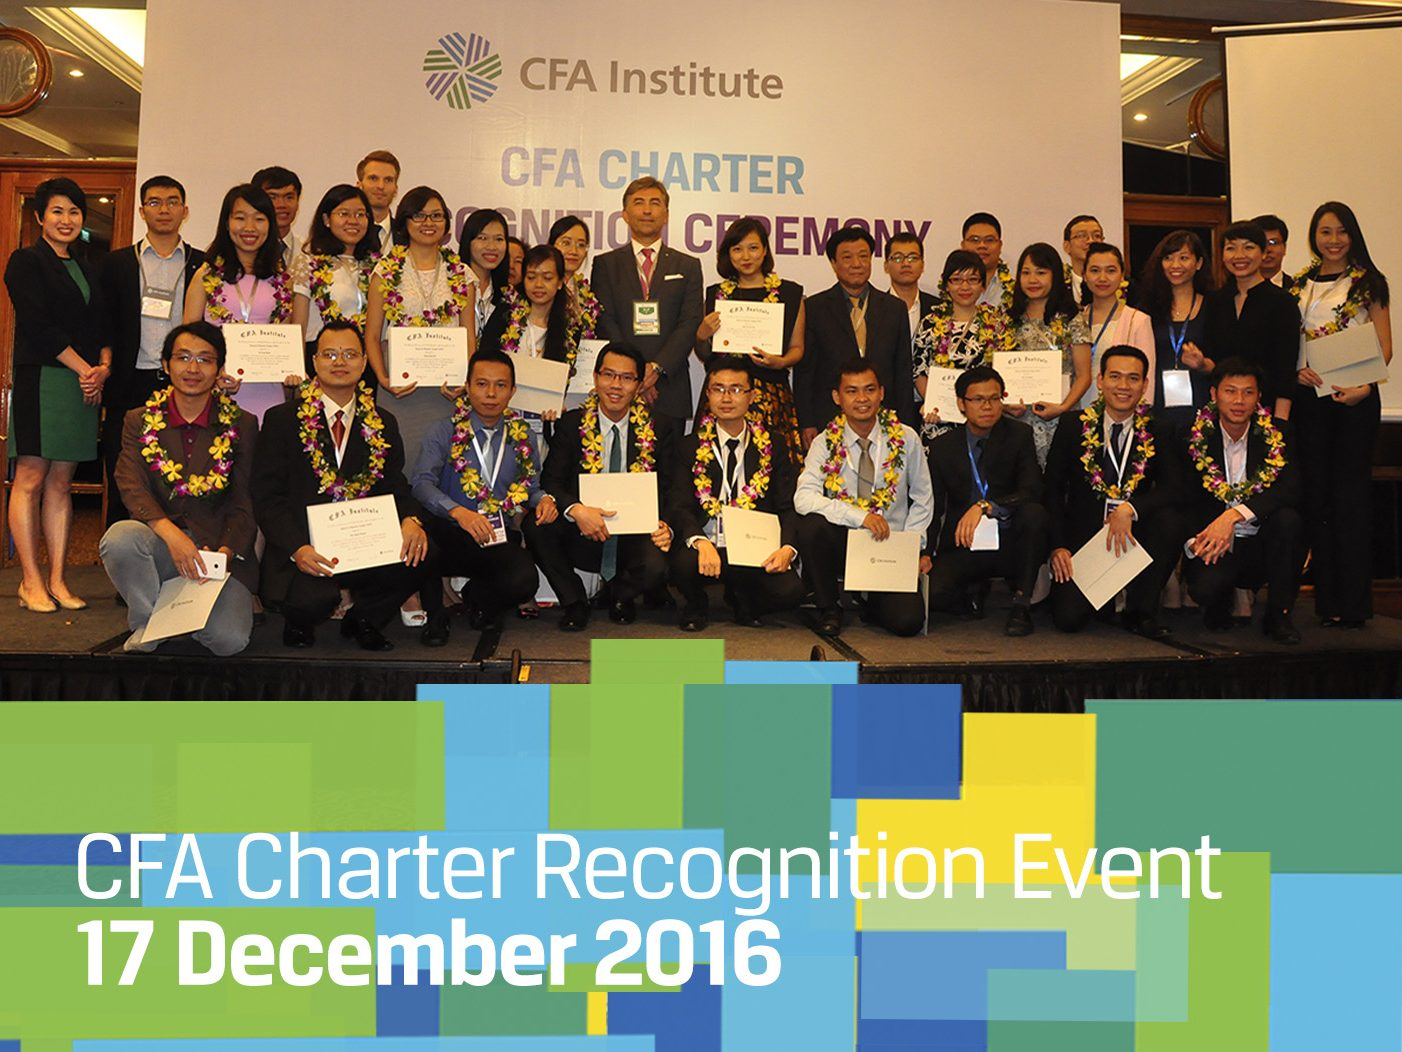 CFA Charter Recognition Ceremony